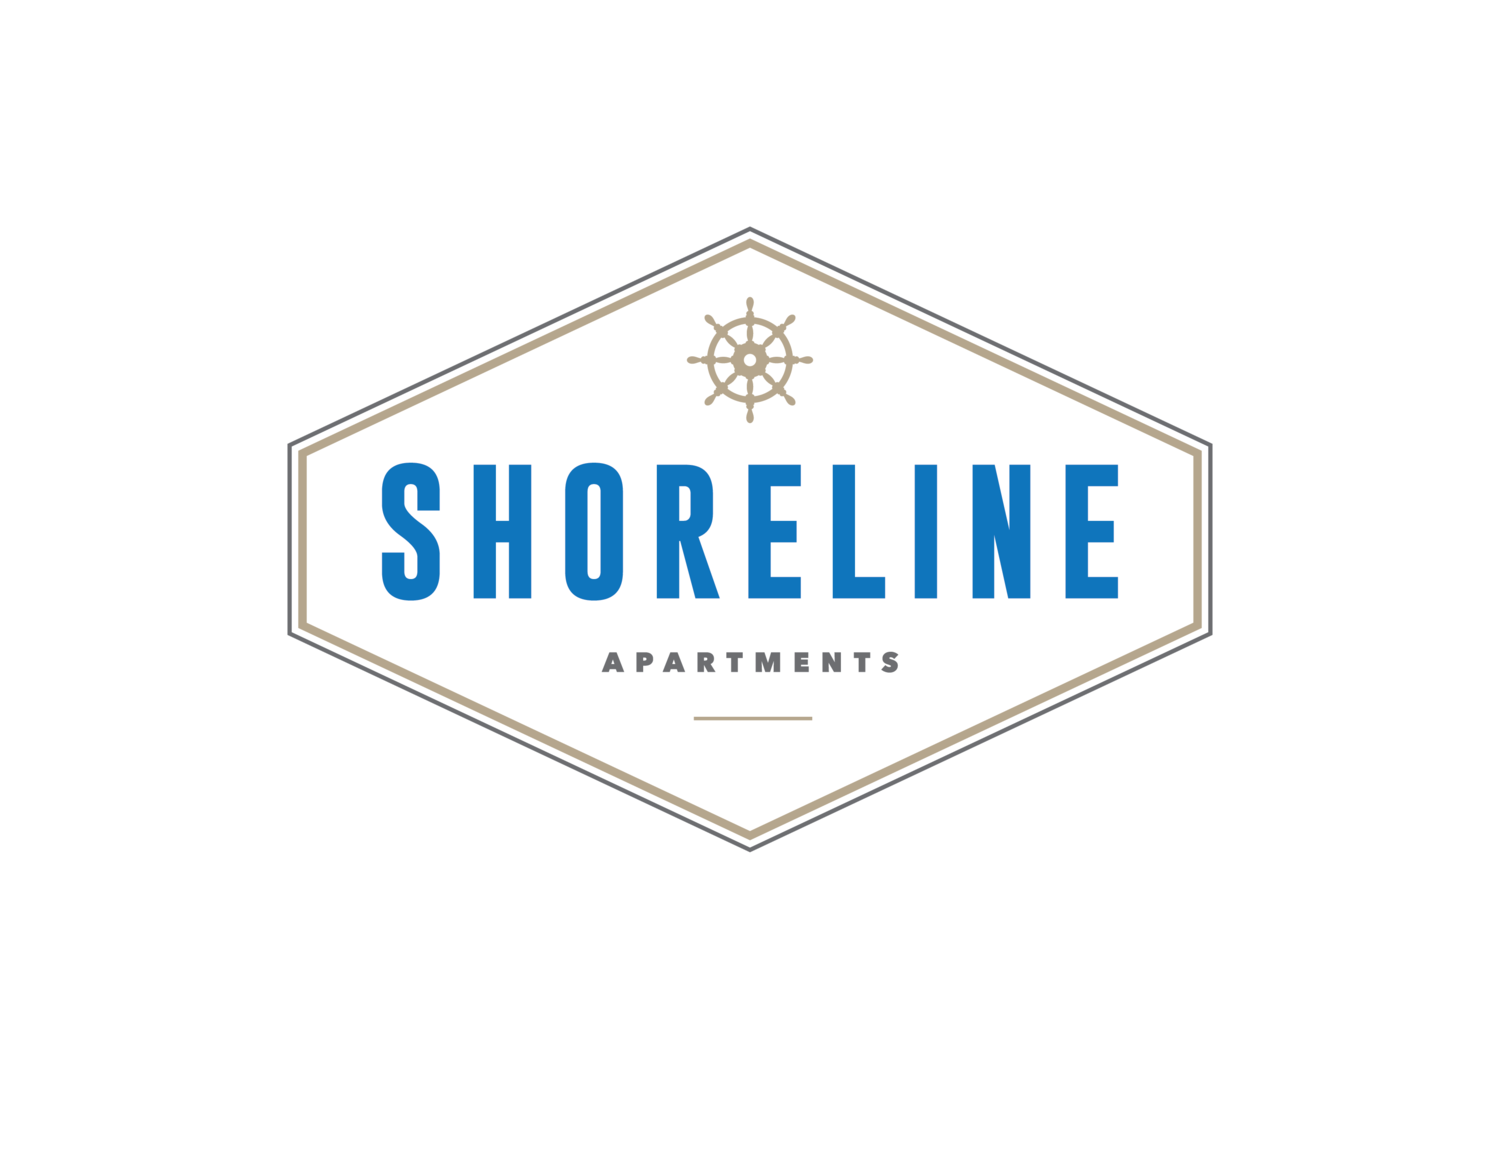 Shoreline Apartments